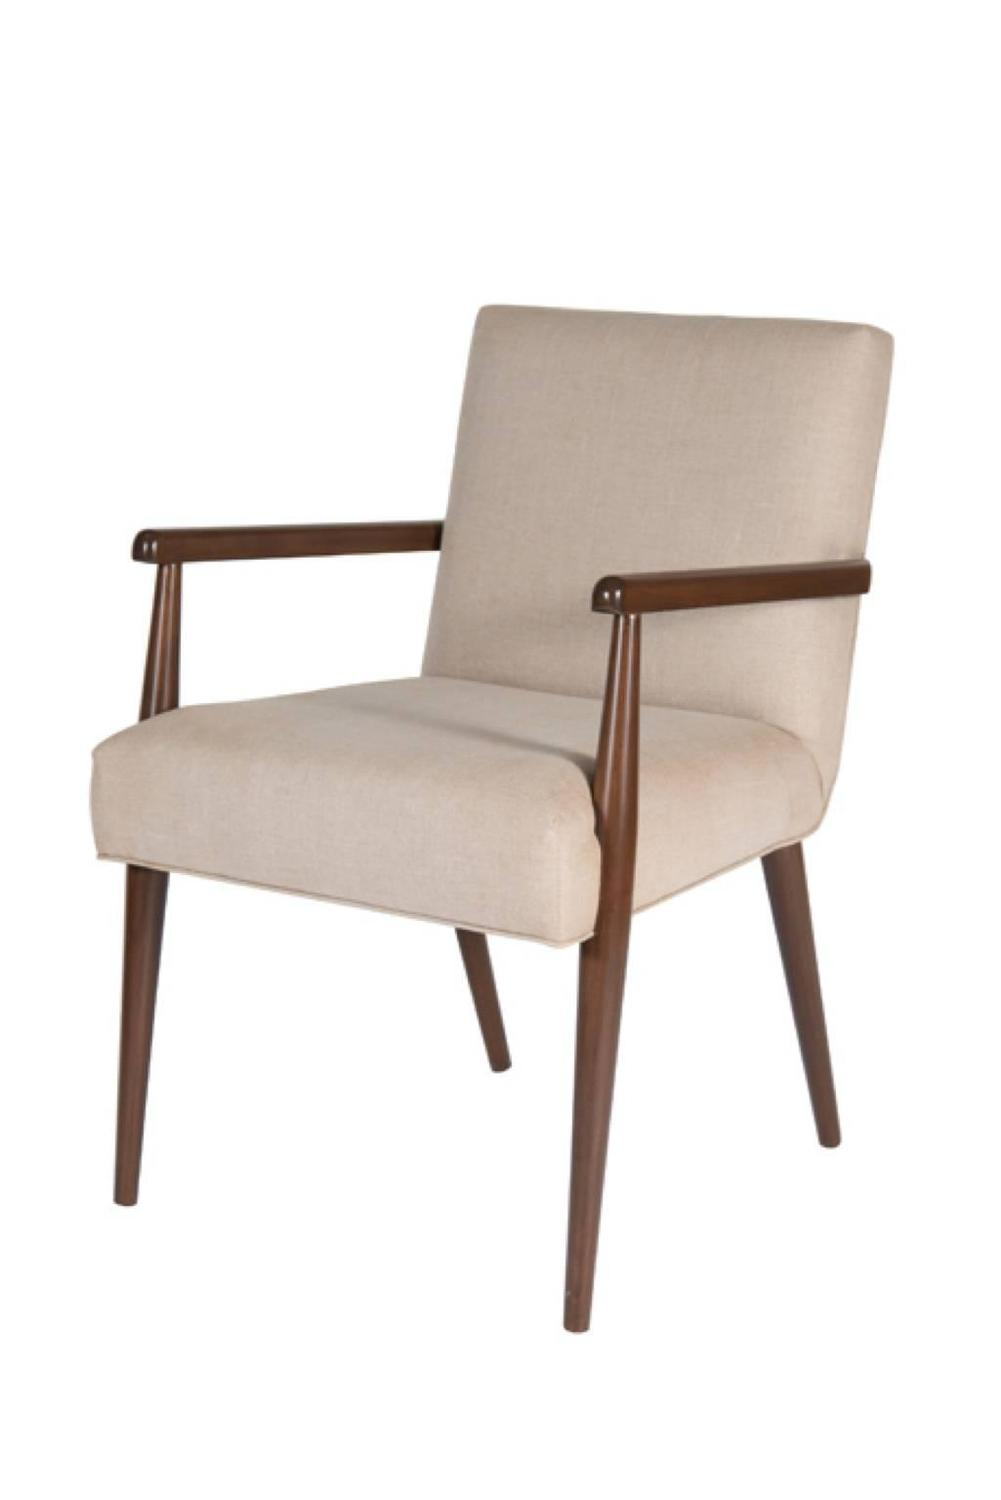 sheppard dowel leg arm dining chair for sale at 1stdibs